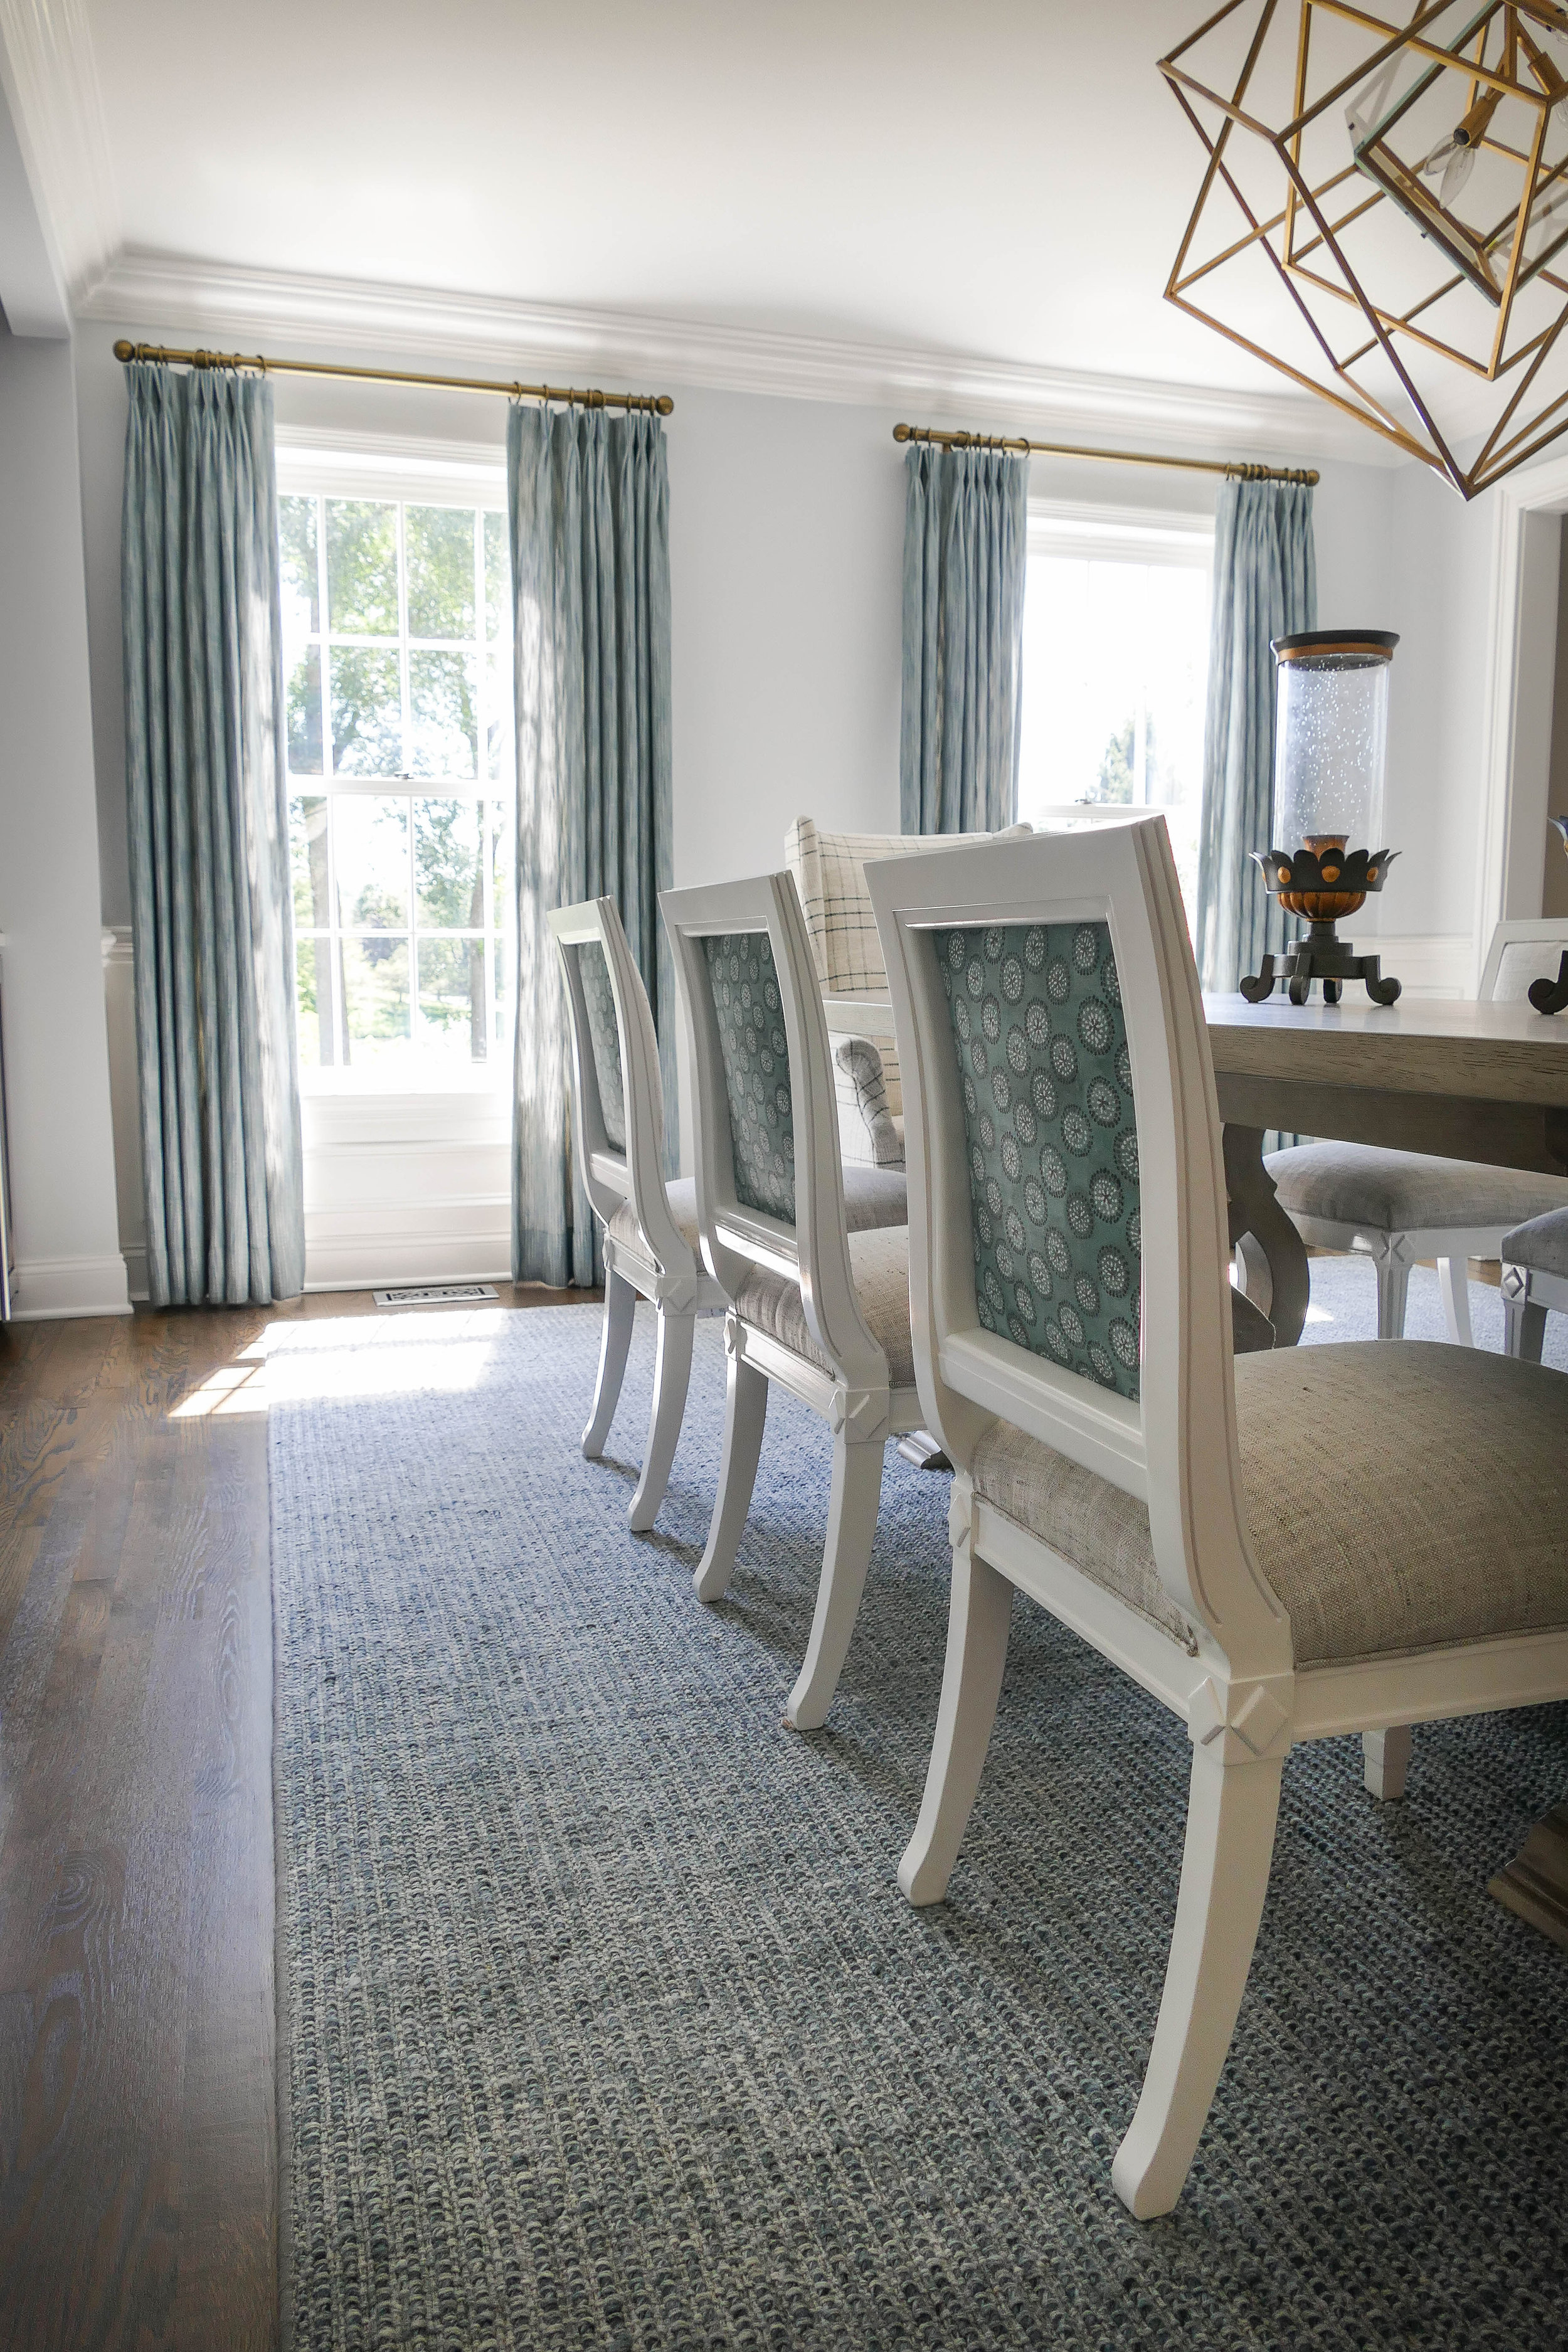 Dining Room Chairs.jpg